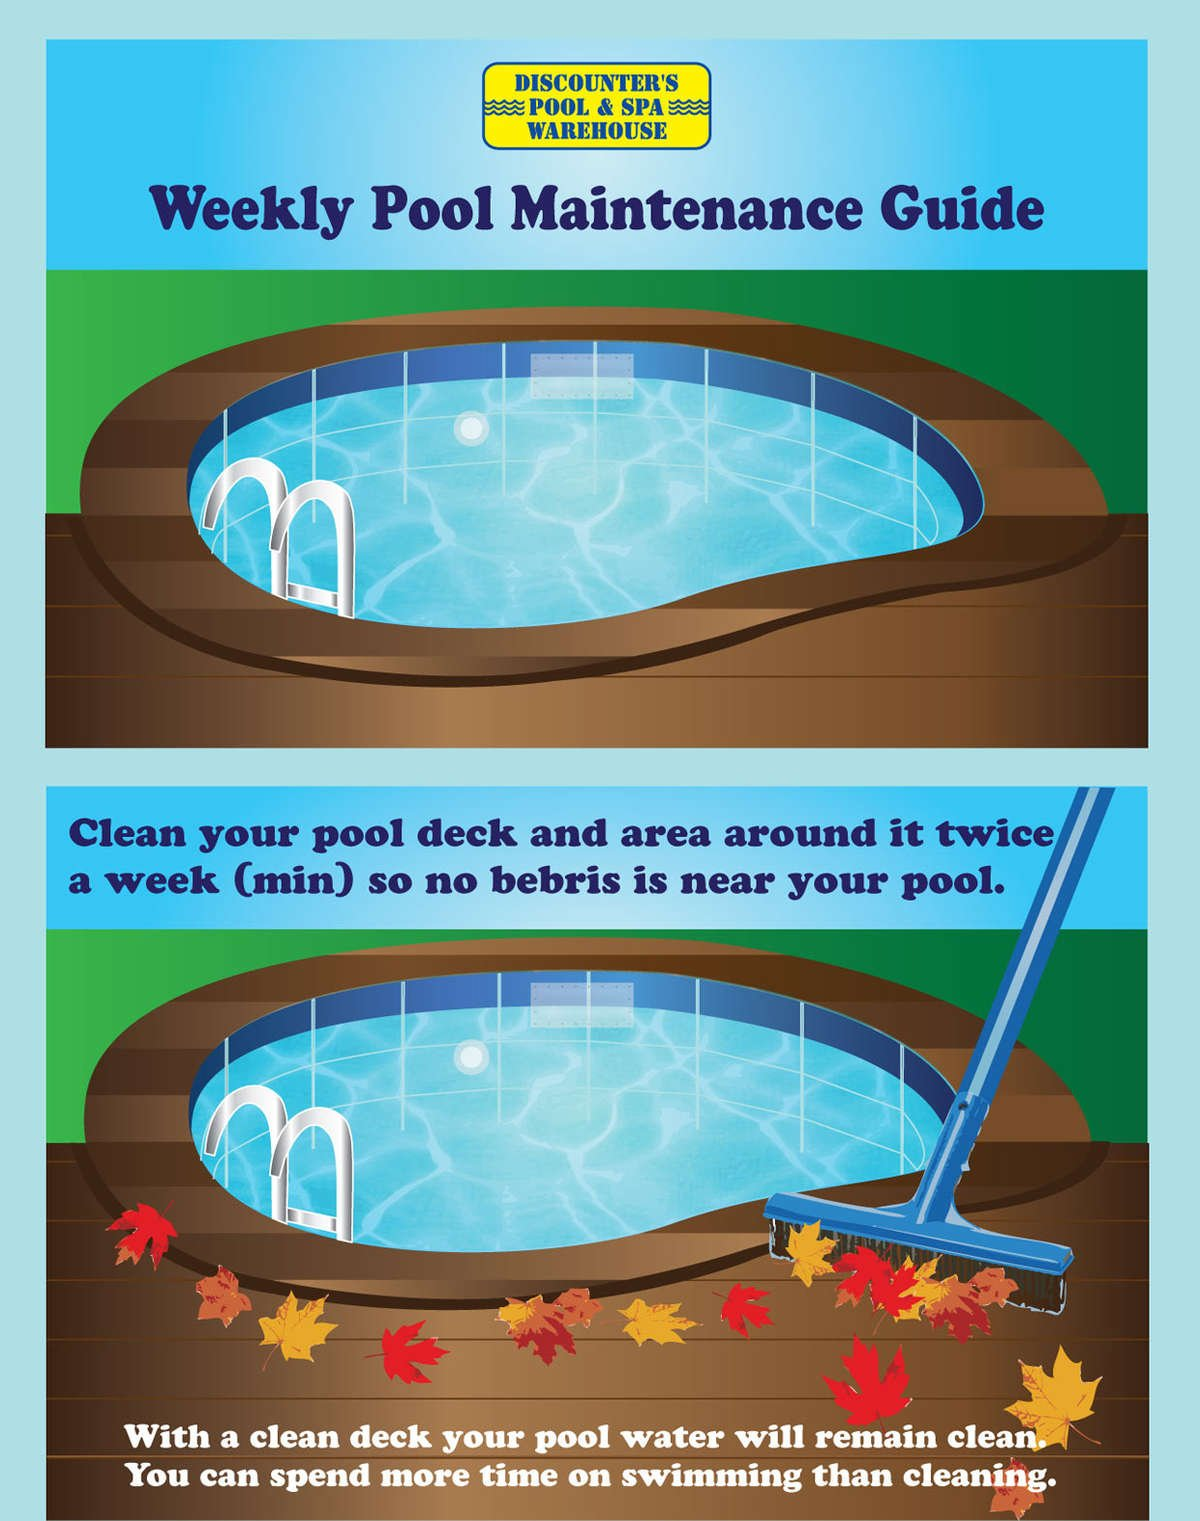 Weekly Pool Maintenance Guide